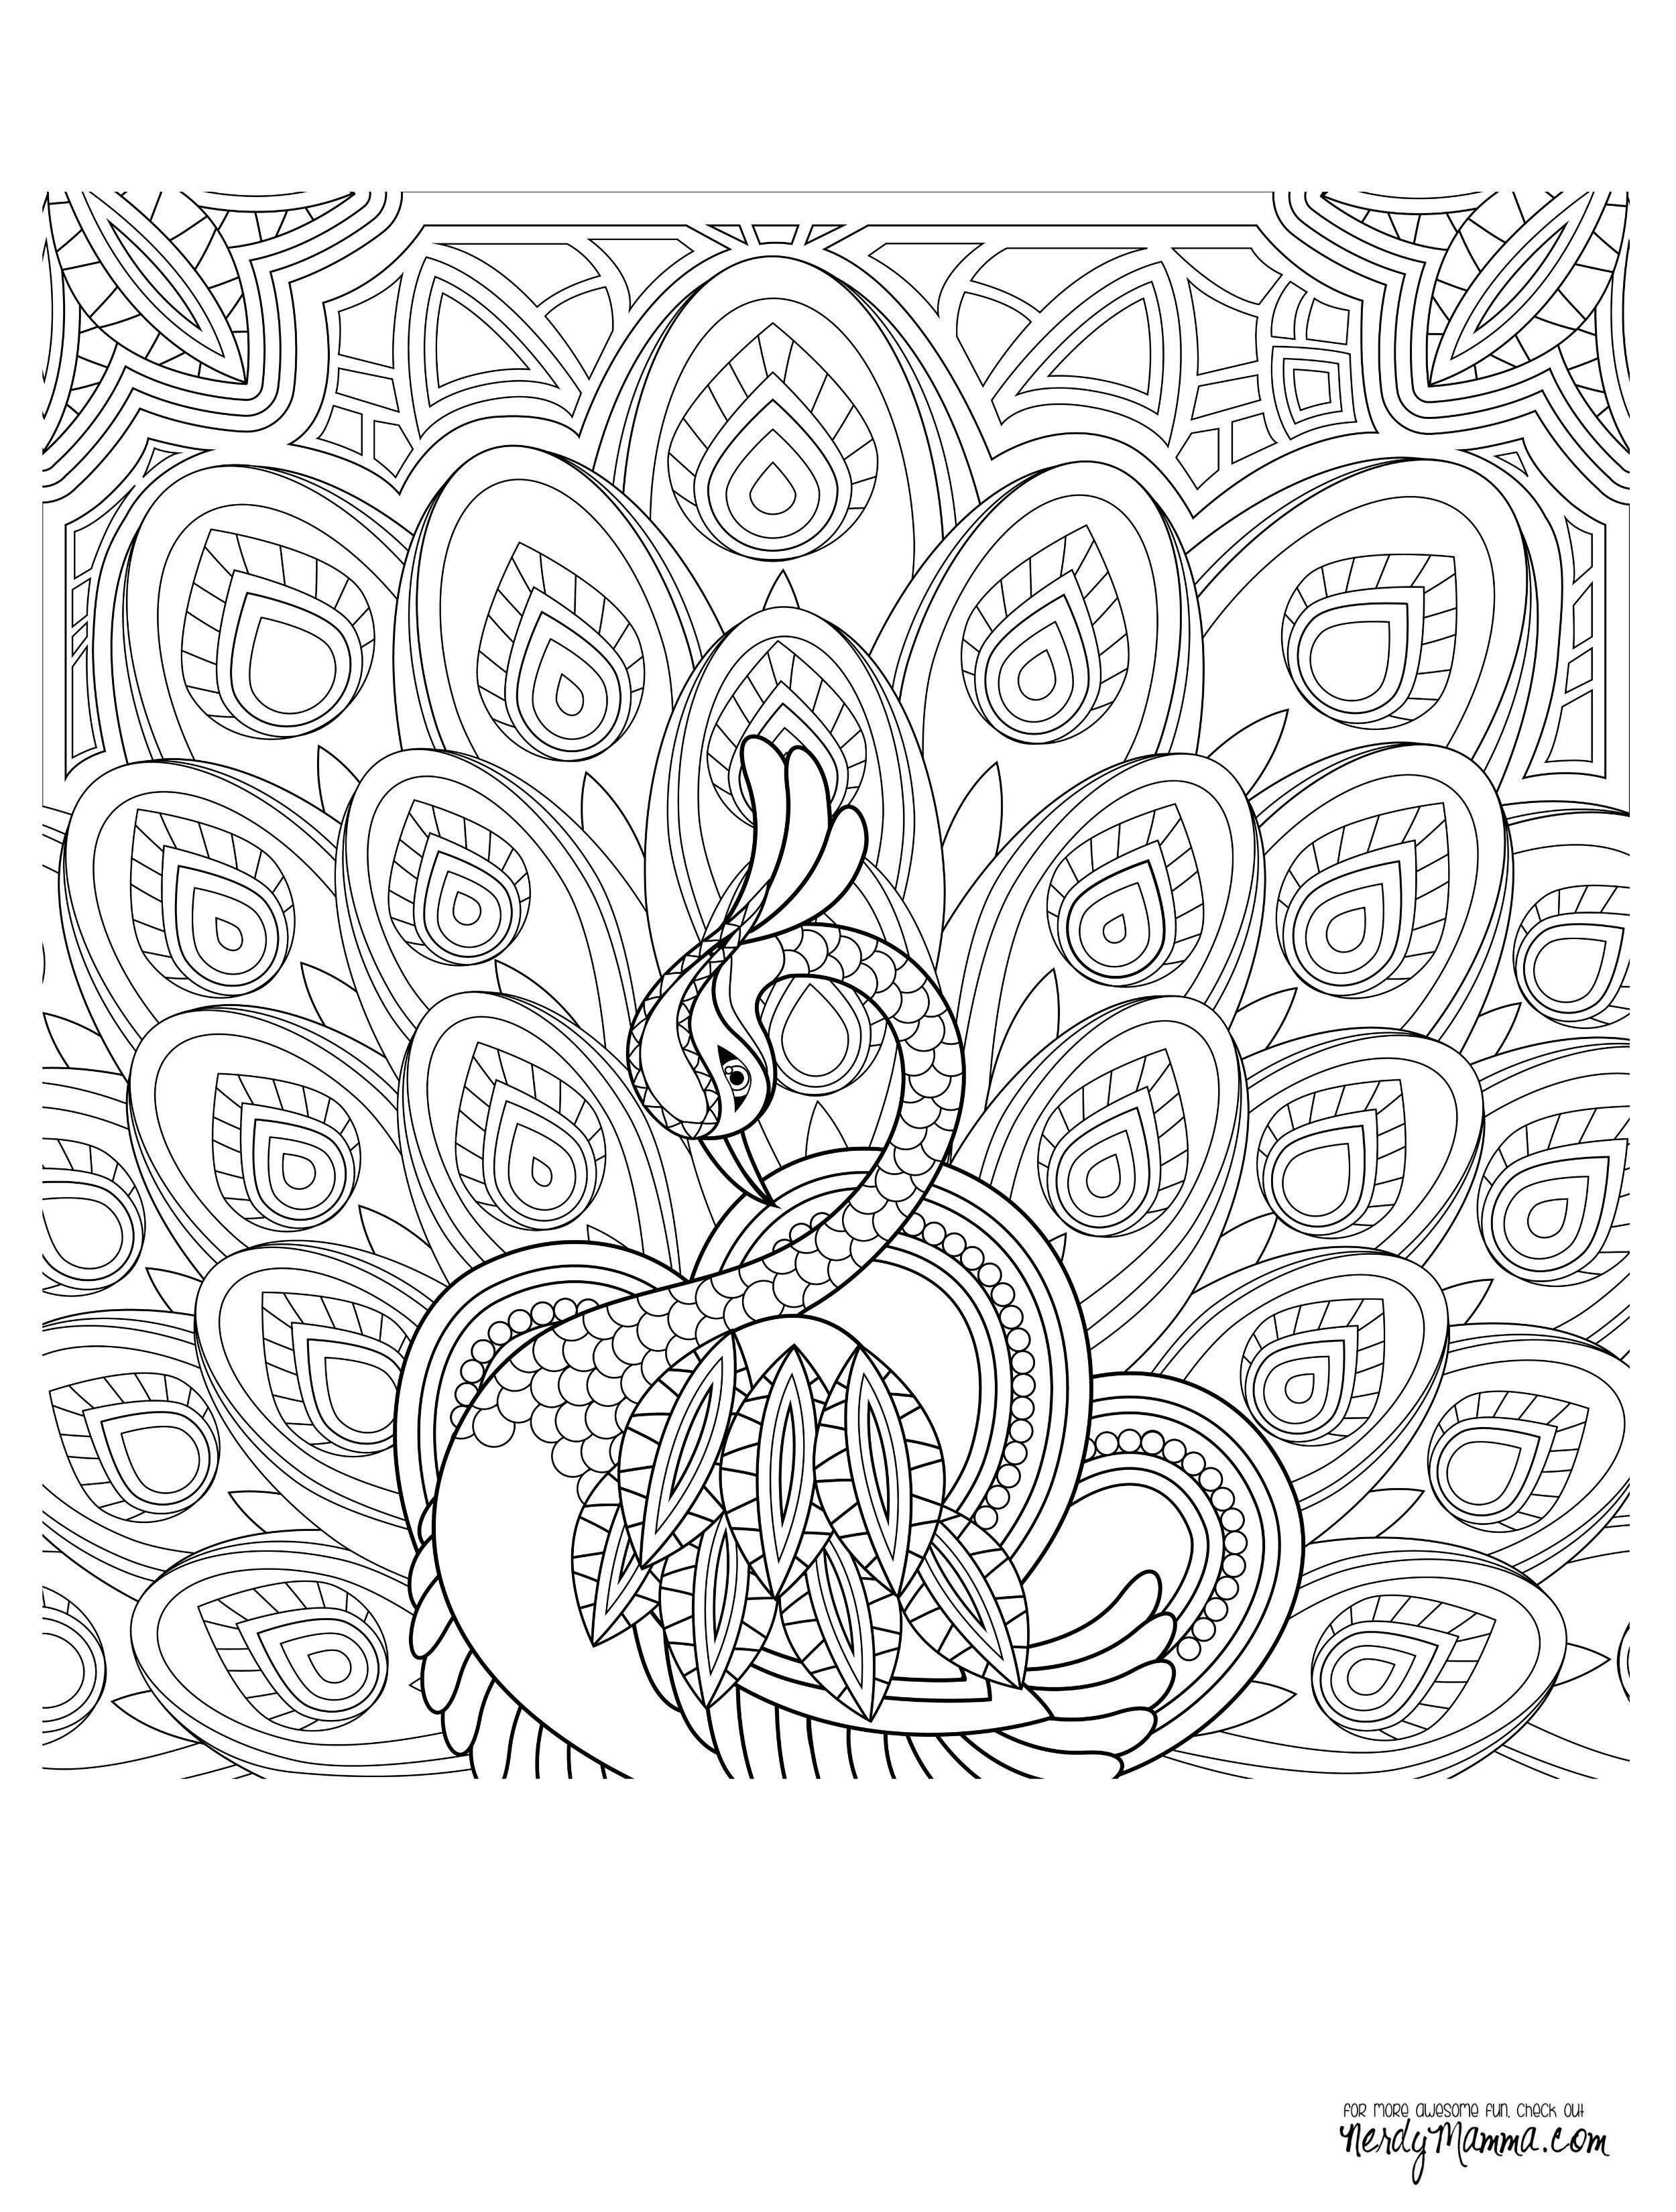 colorama coloring pages to print Download-Peacock Feather Coloring pages colouring adult detailed advanced printable Kleuren voor volwassenen coloriage pour adulte anti stress kleurplaat voor 3-b